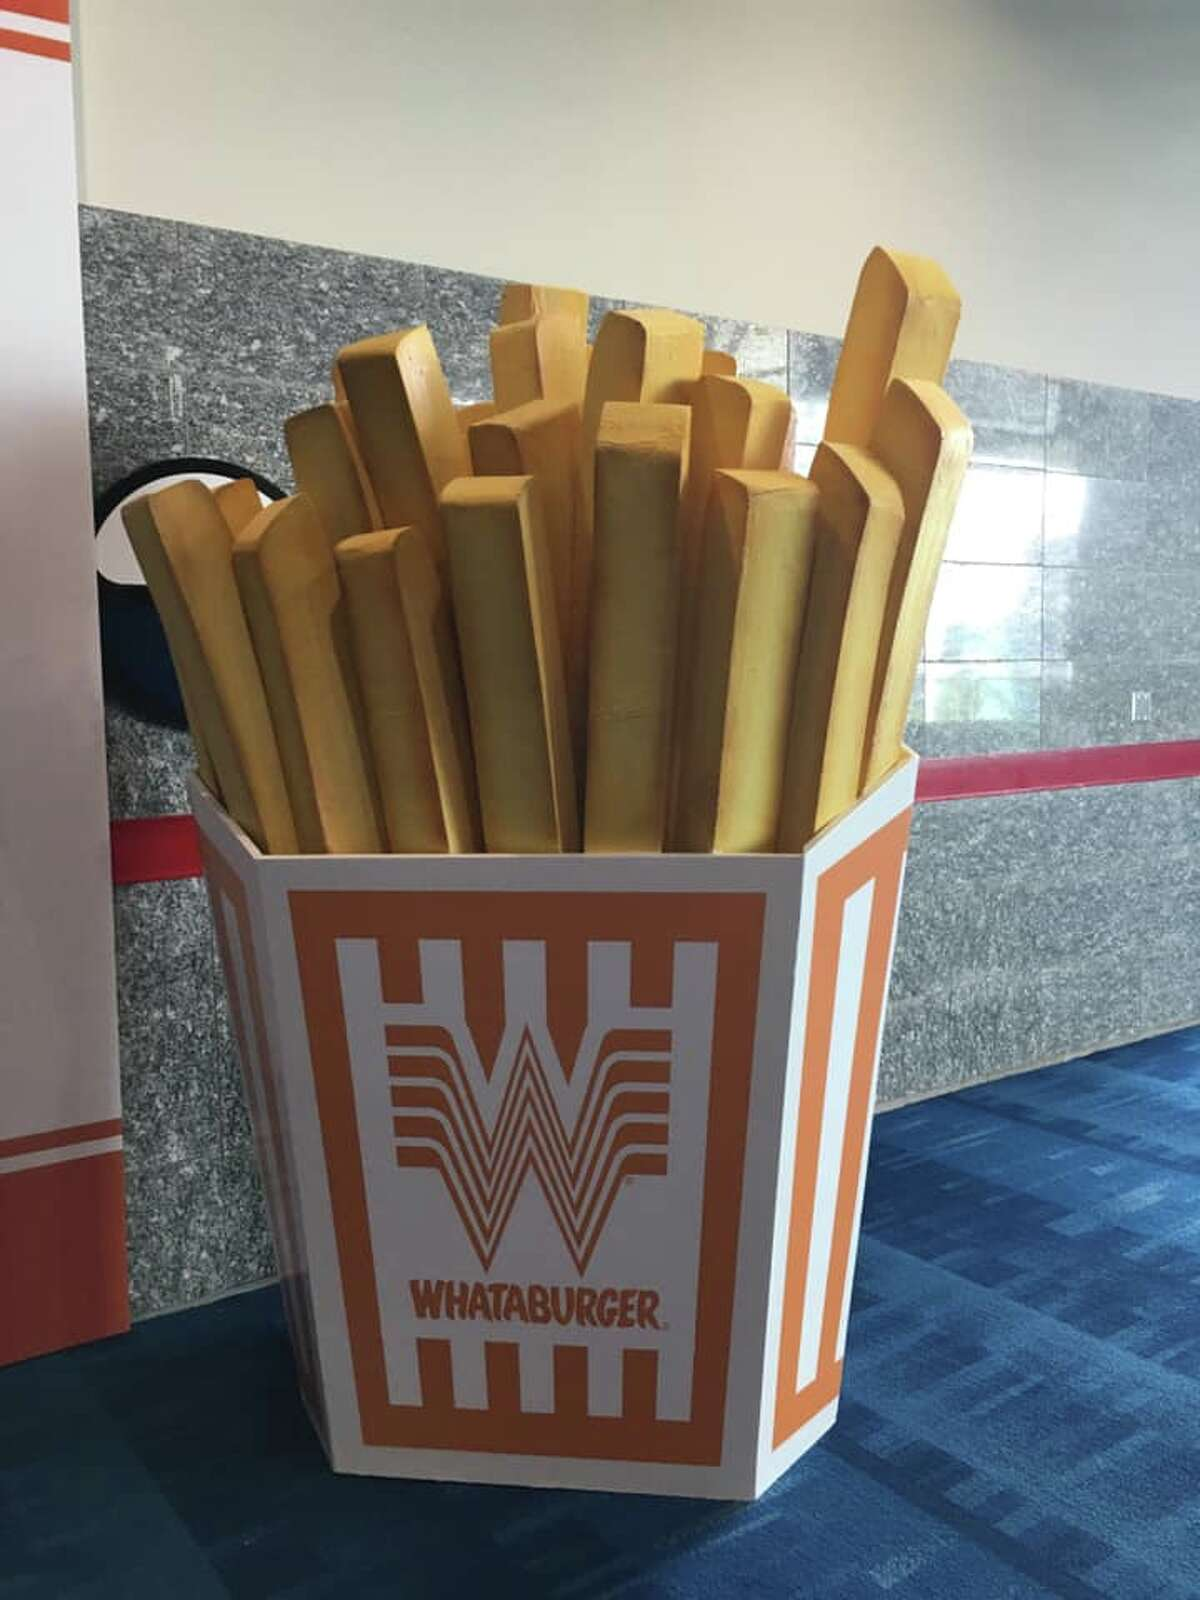 """Over-sized fries and Fancy Ketchup packets can be found in the convention center. According to a Whataburger spokesperson, attendees experience the brand in a """"larger-than-life"""" setting in order to celebrate the pride they have for their hometowns."""